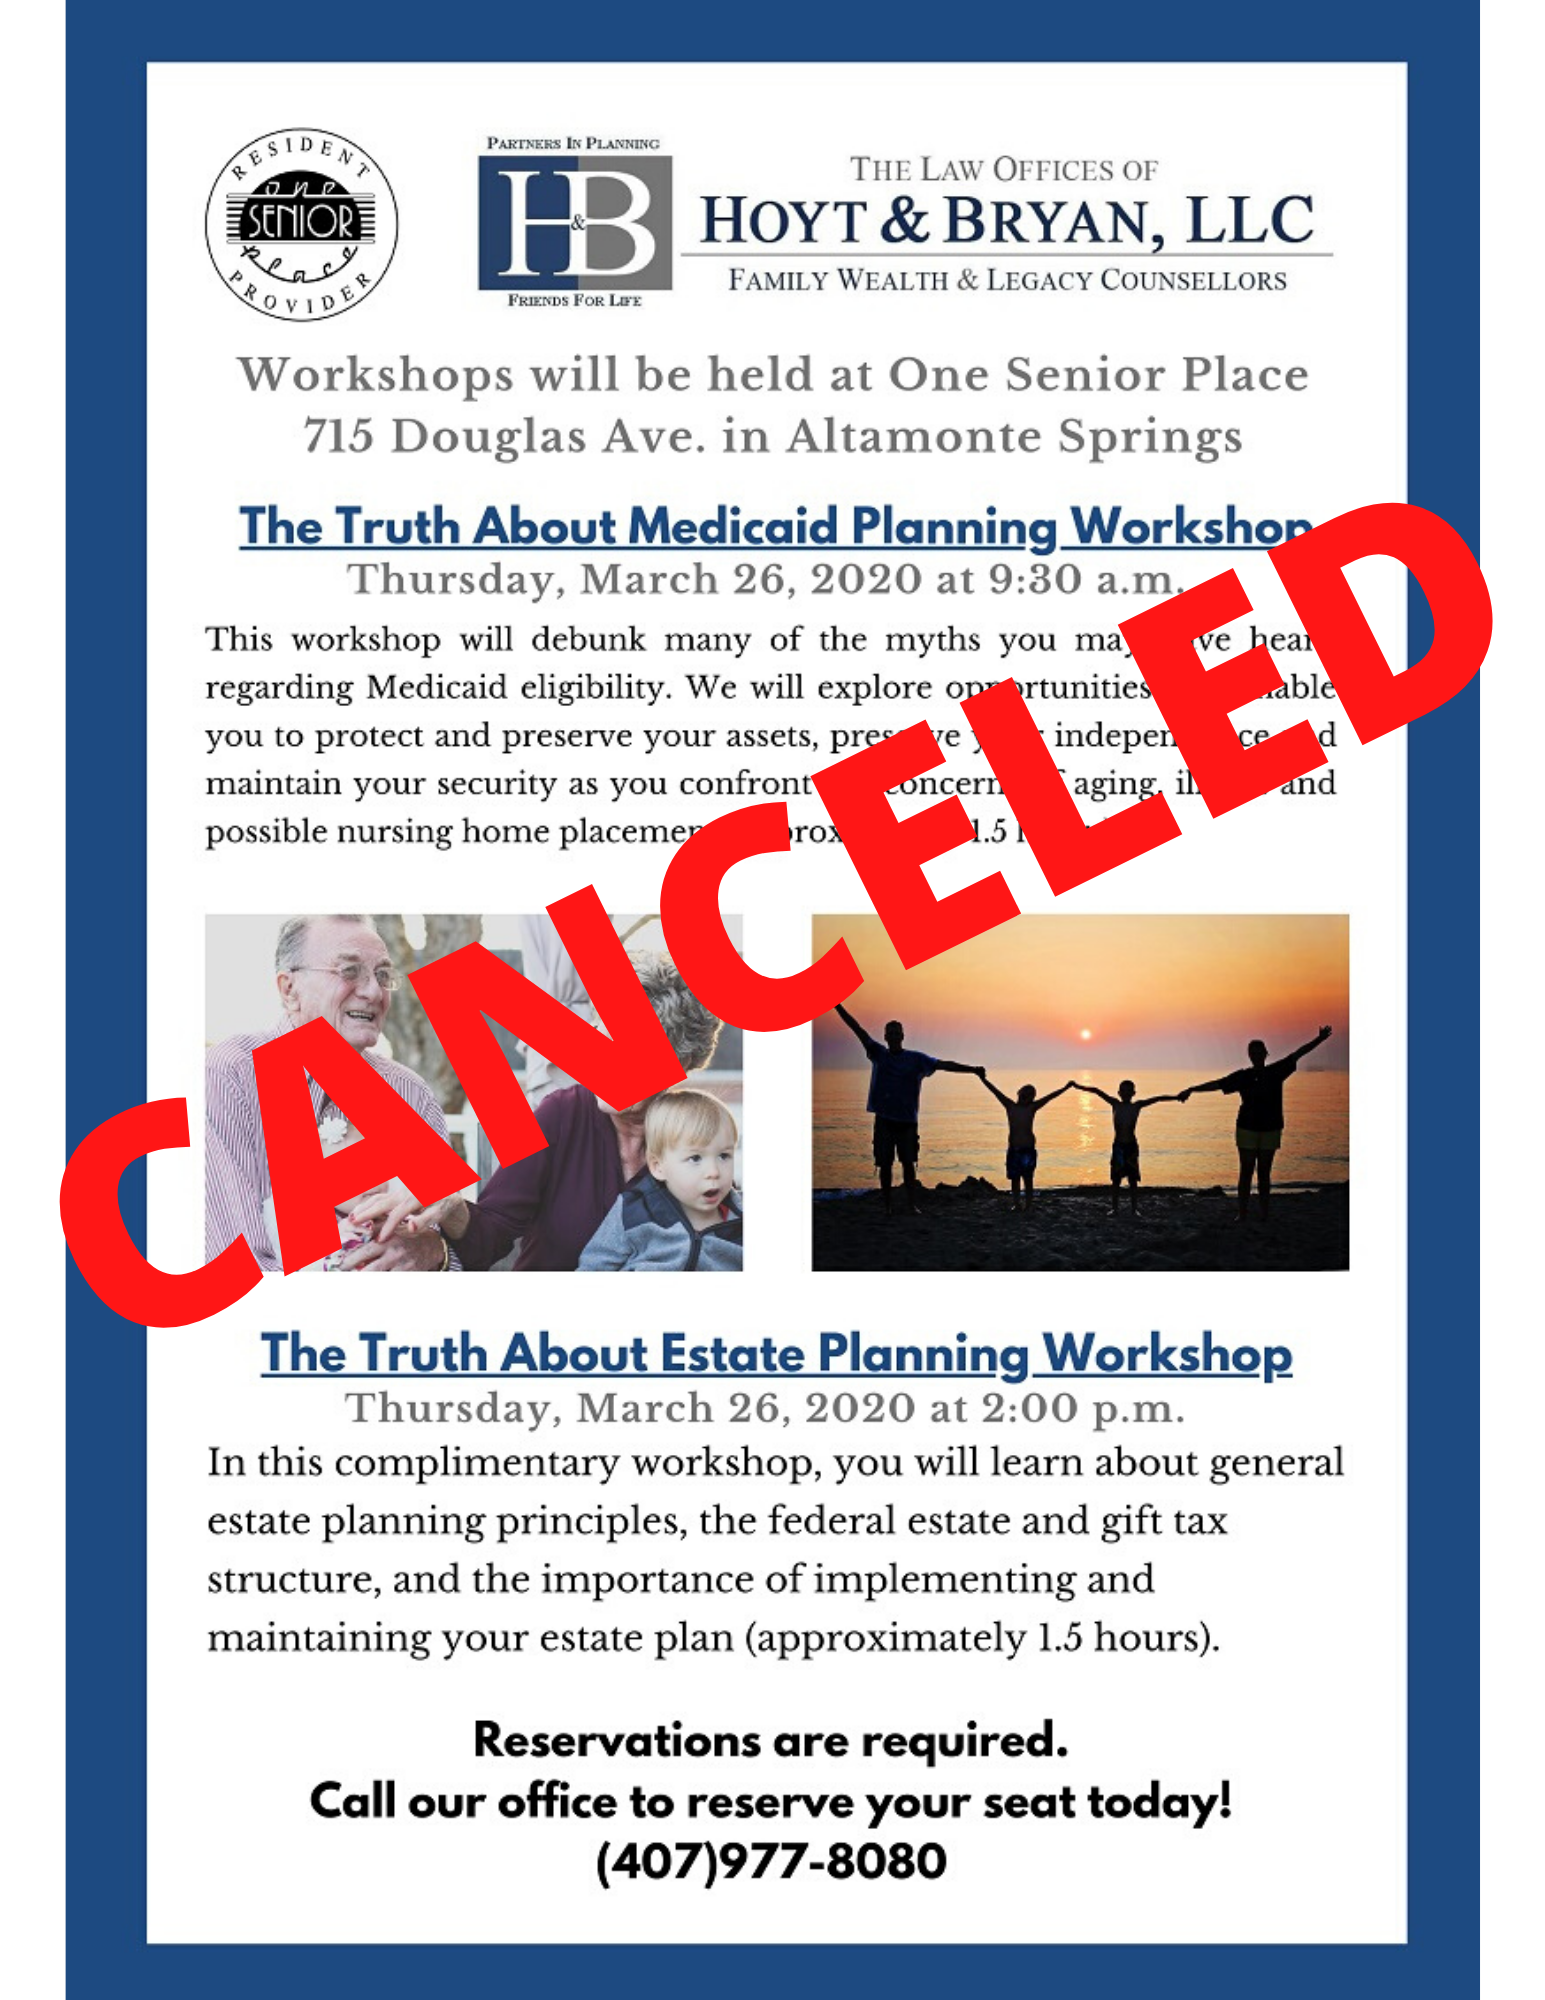 CANCELED: The Truth About Estate Planning Workshop